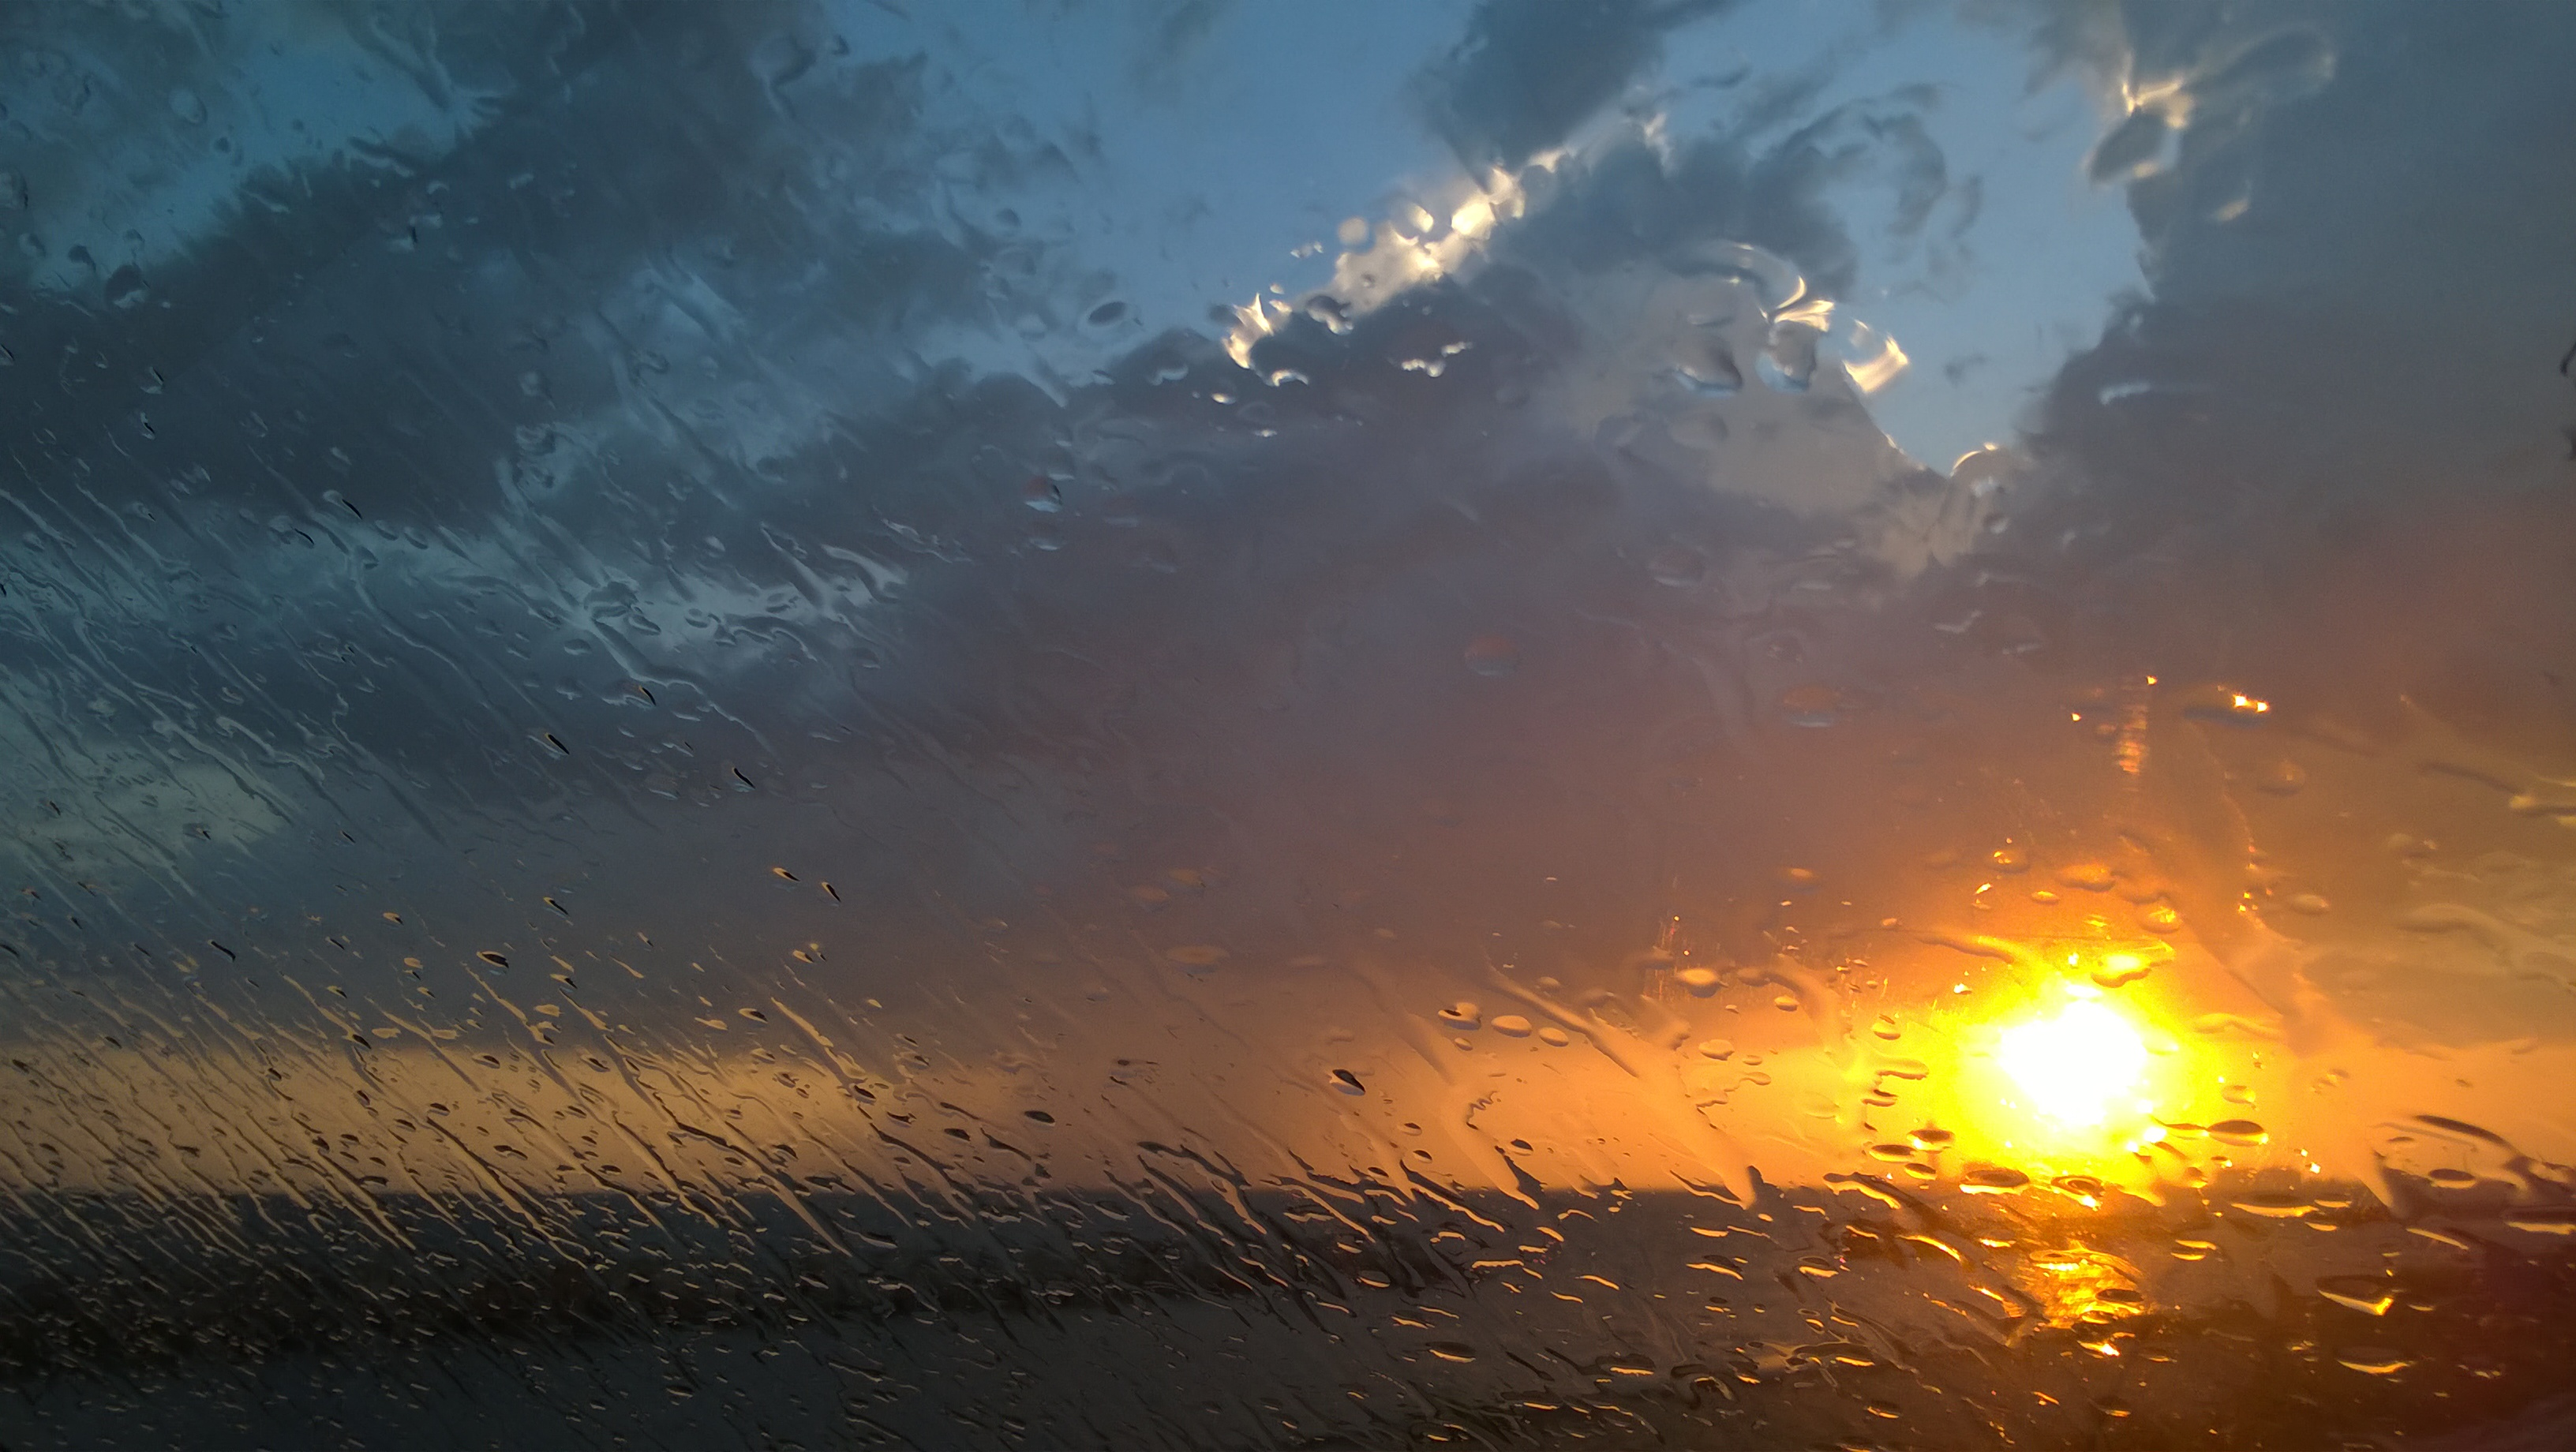 Rain on a window at sunset, Abstract, Rain, Weather, Warming, HQ Photo